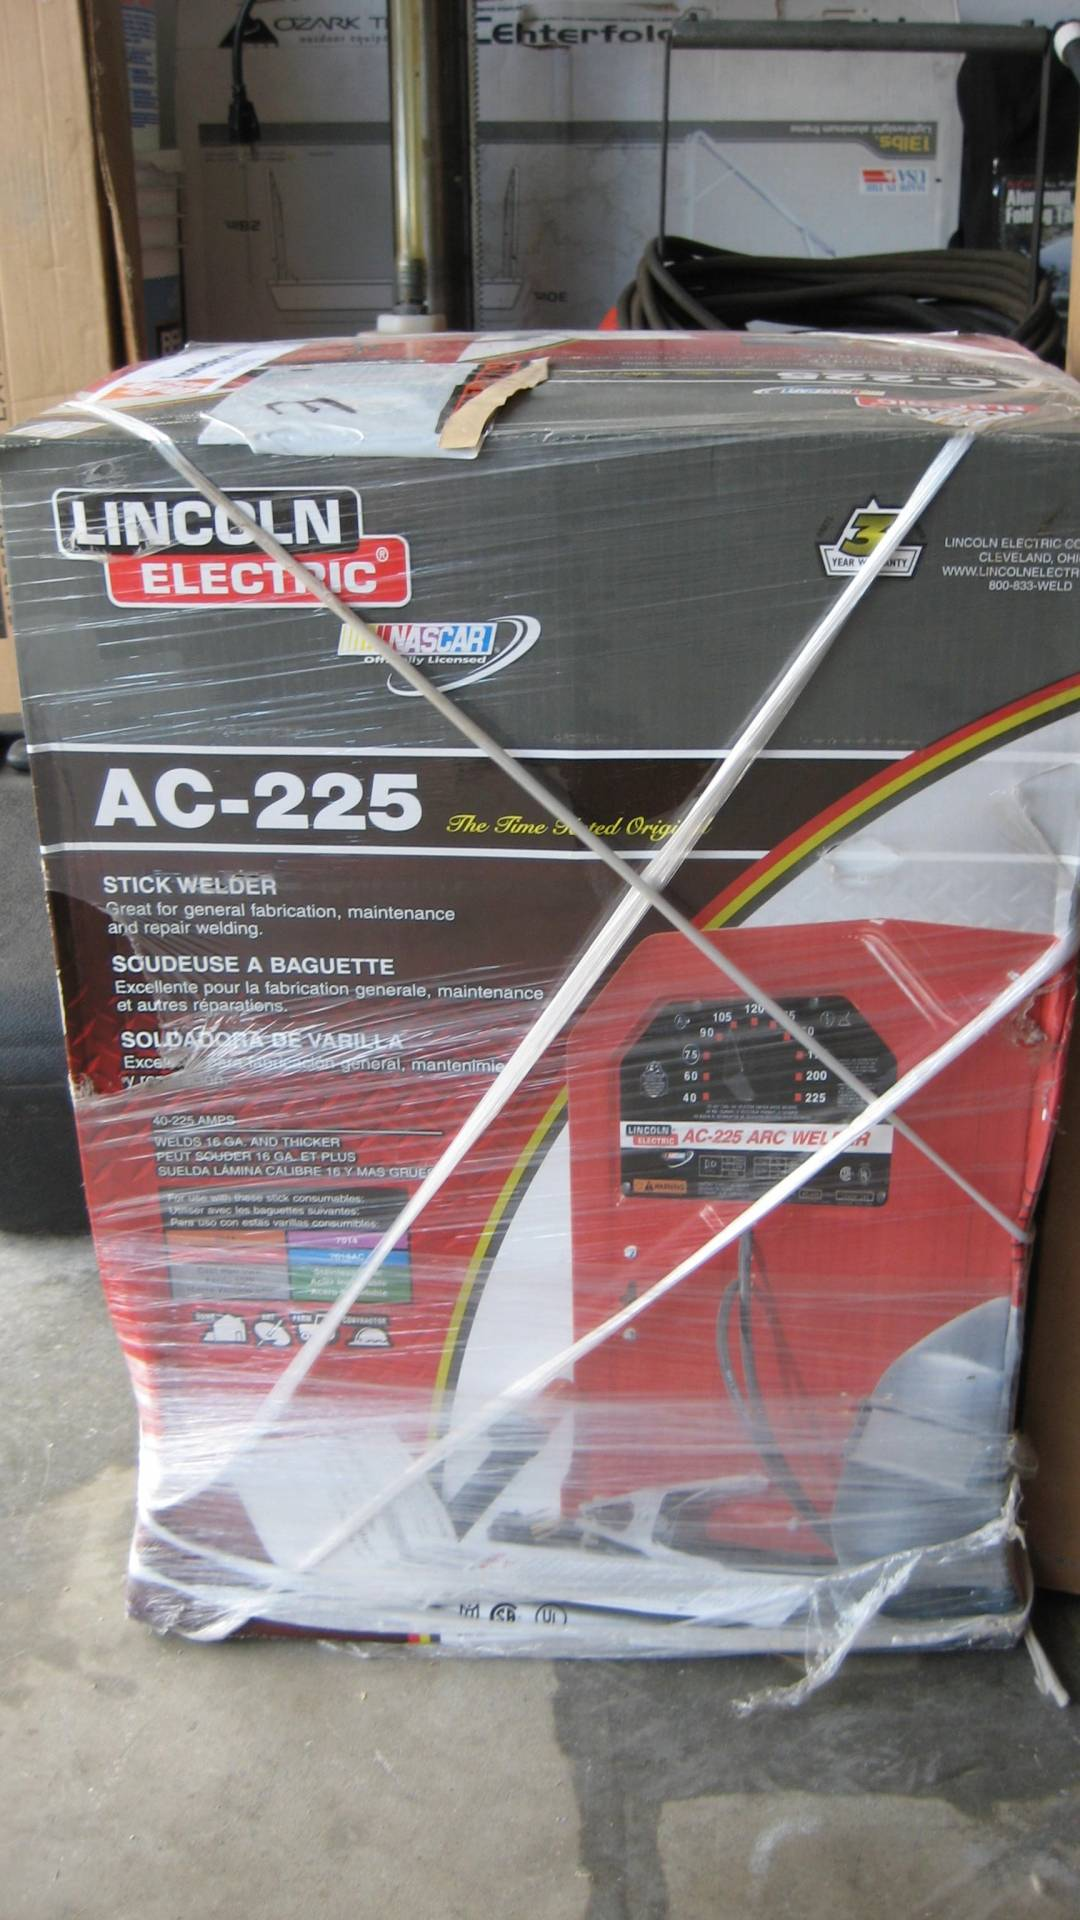 New Lincoln Stick Welder 125 Bloodydecks Garage Cleanout 005